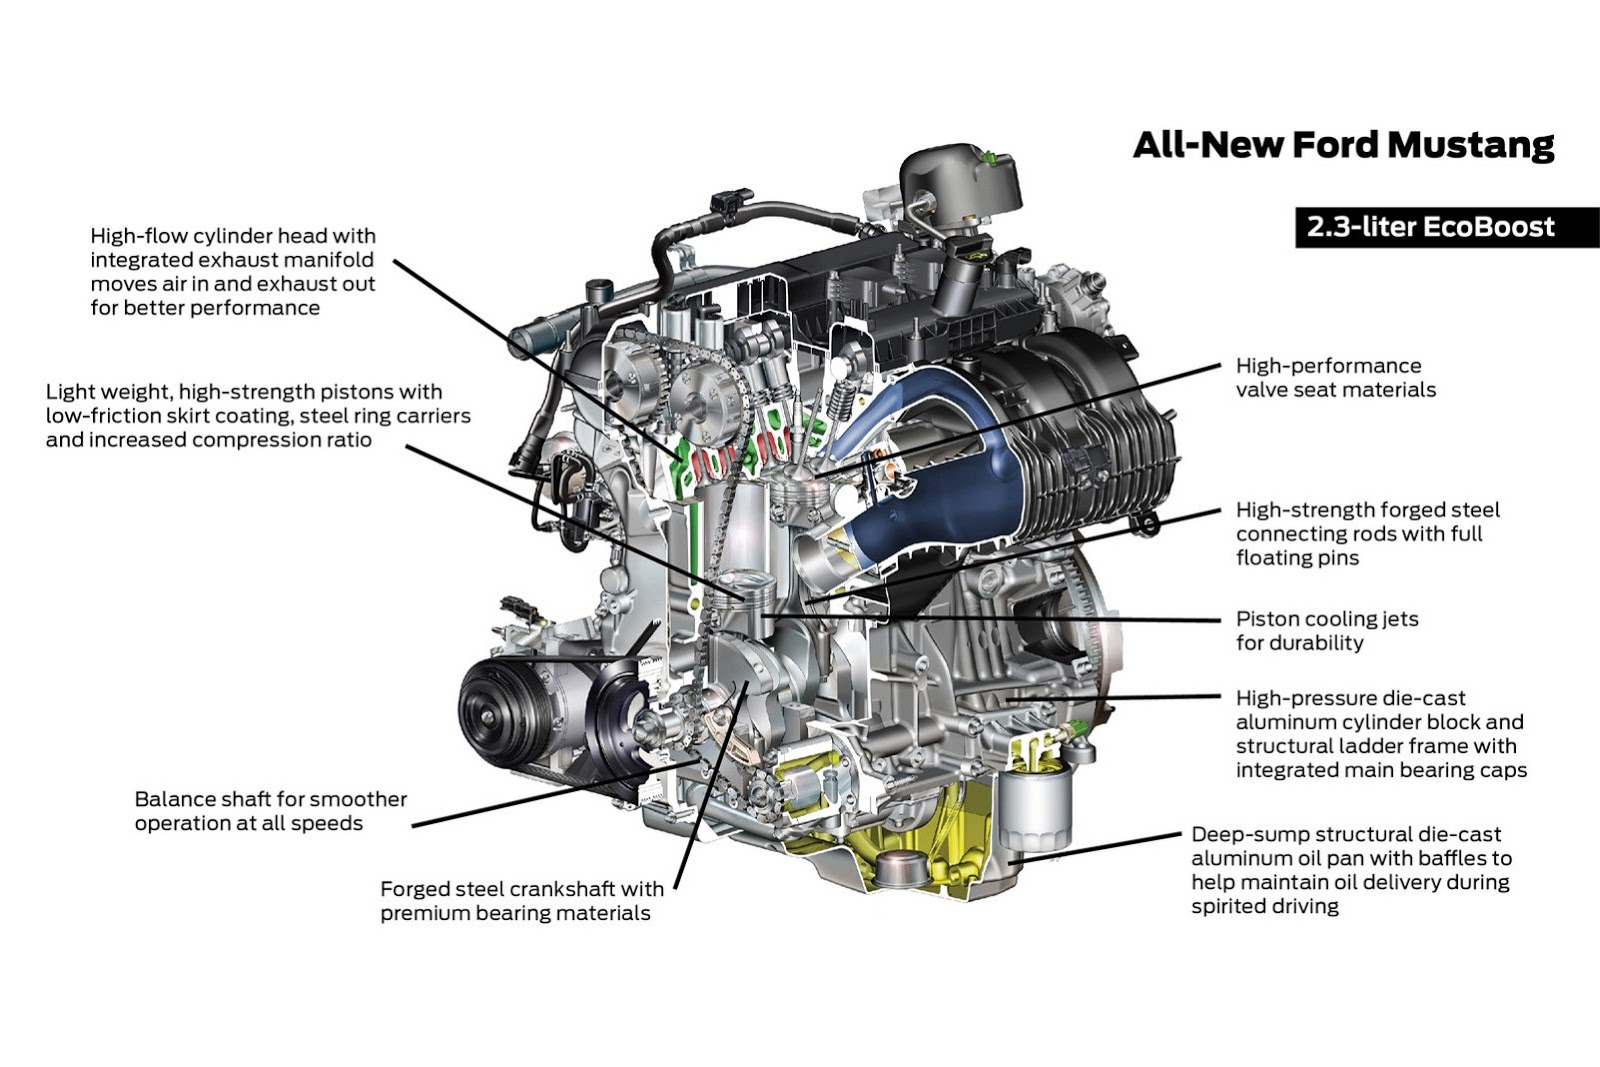 2015 mustang engine lineup official details amcarguide com rh amcarguide com Honda Car Engine Parts Diagram Toyota Car Engine Diagram